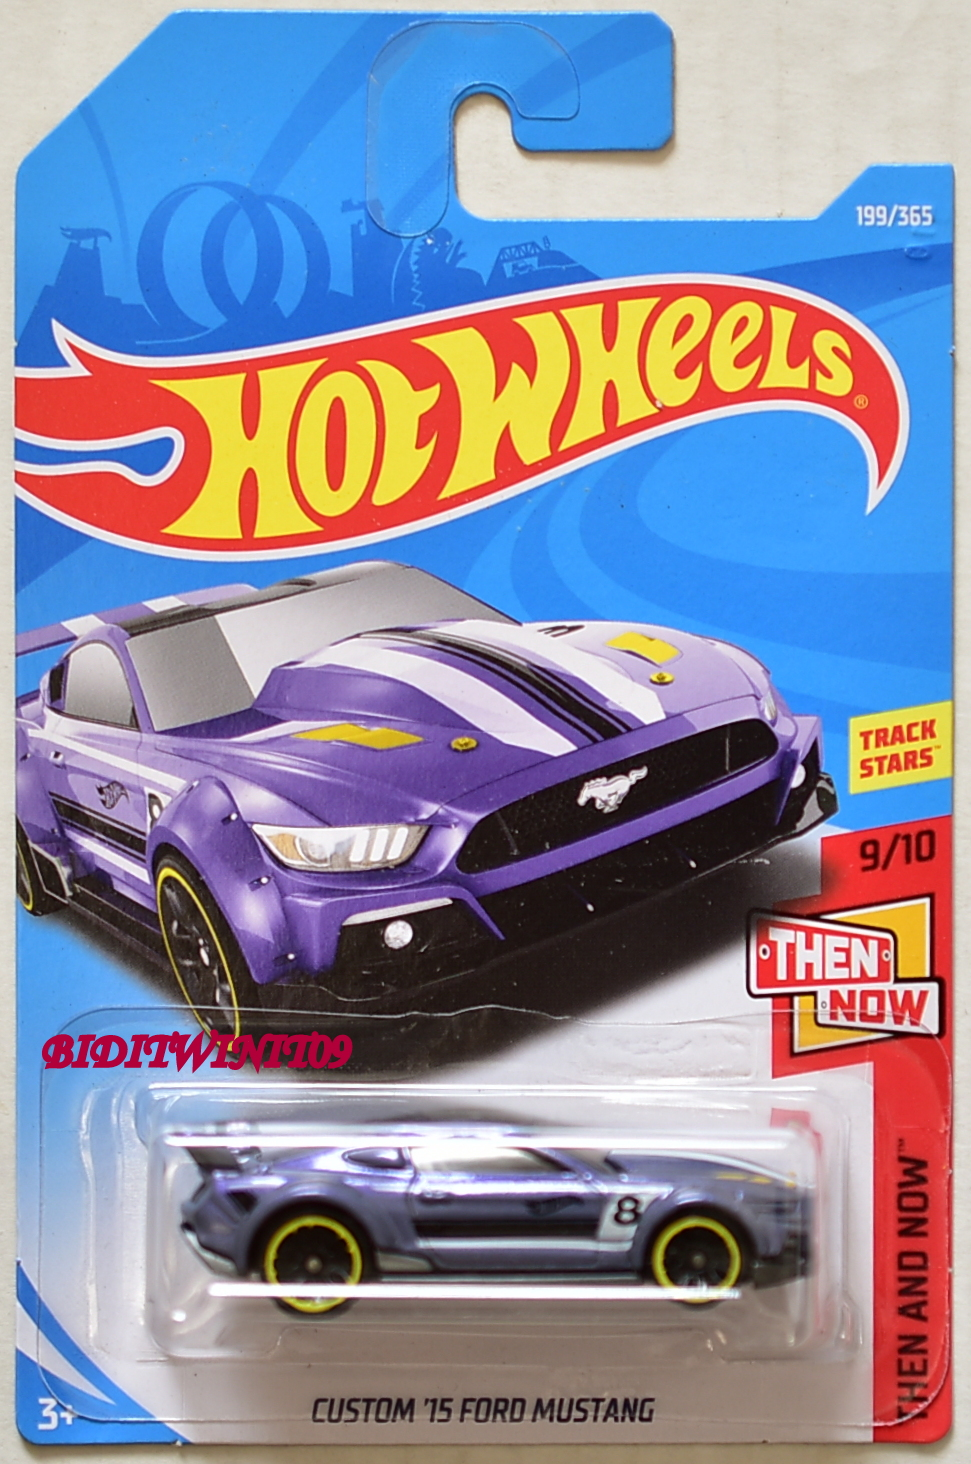 Hot Wheels 2018 #096//365 CUSTOM 2015 FORD MUSTANG red HW Then and now